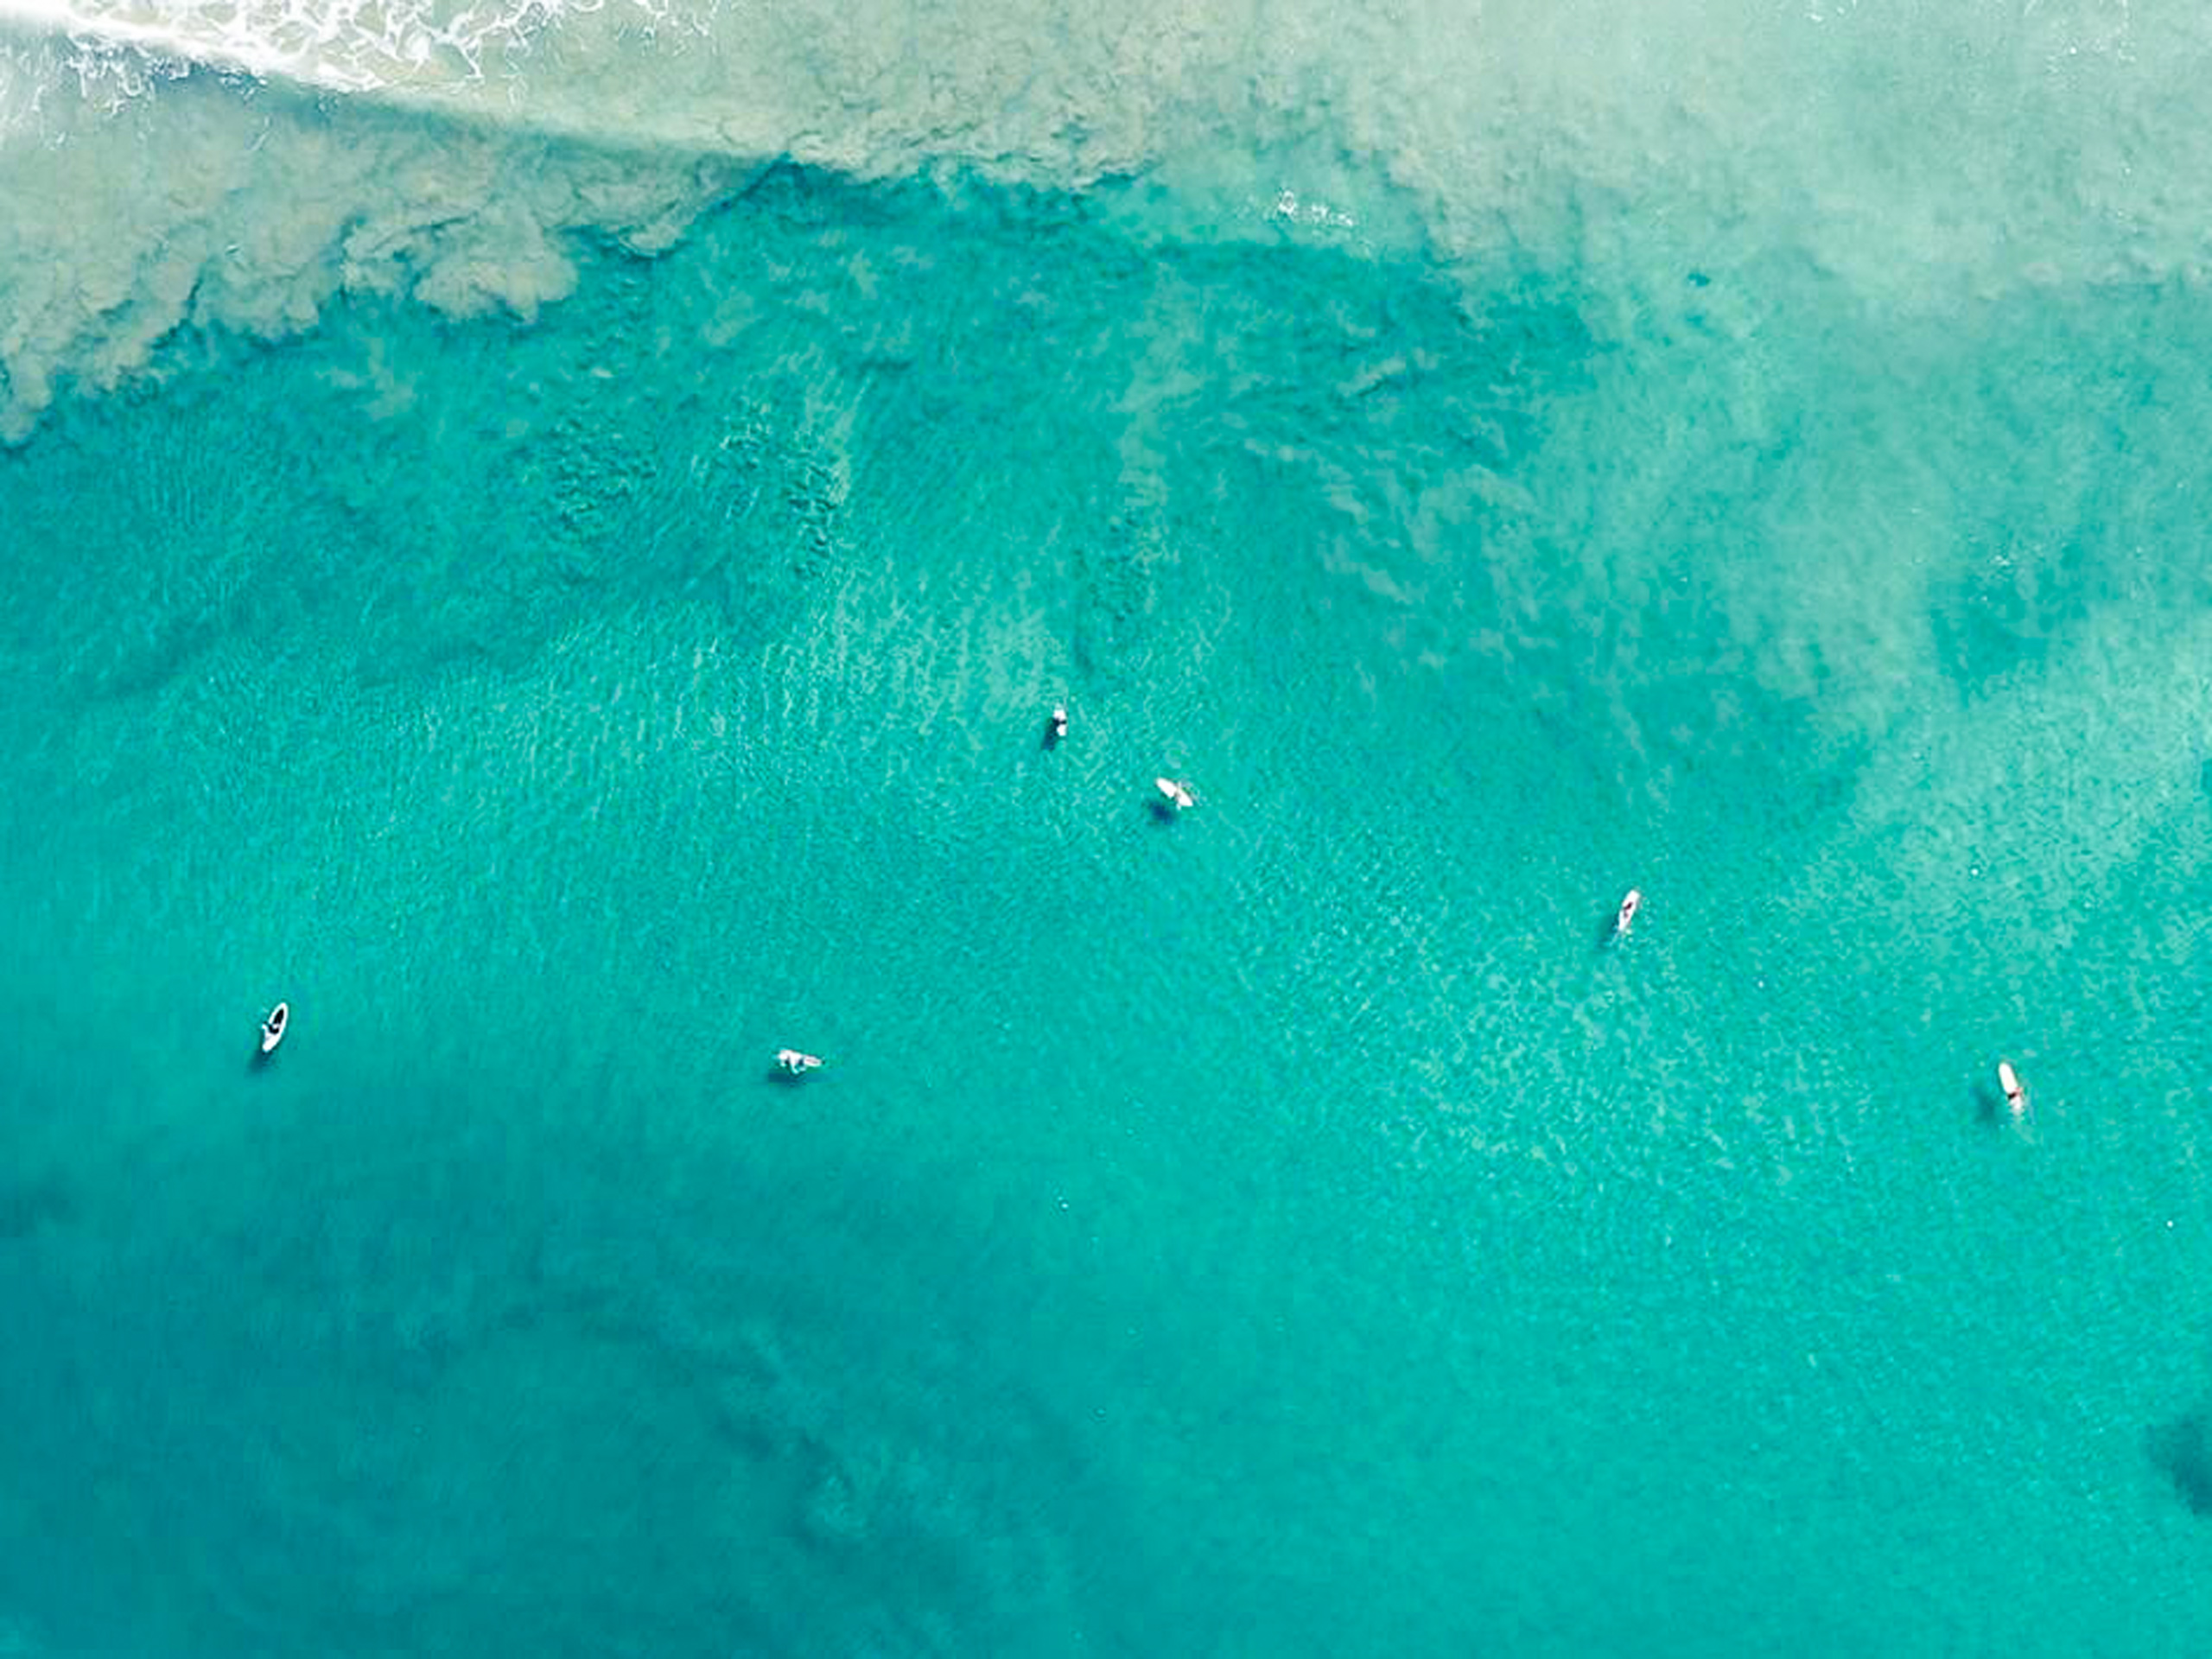 Surfers in the Pacific Ocean air view